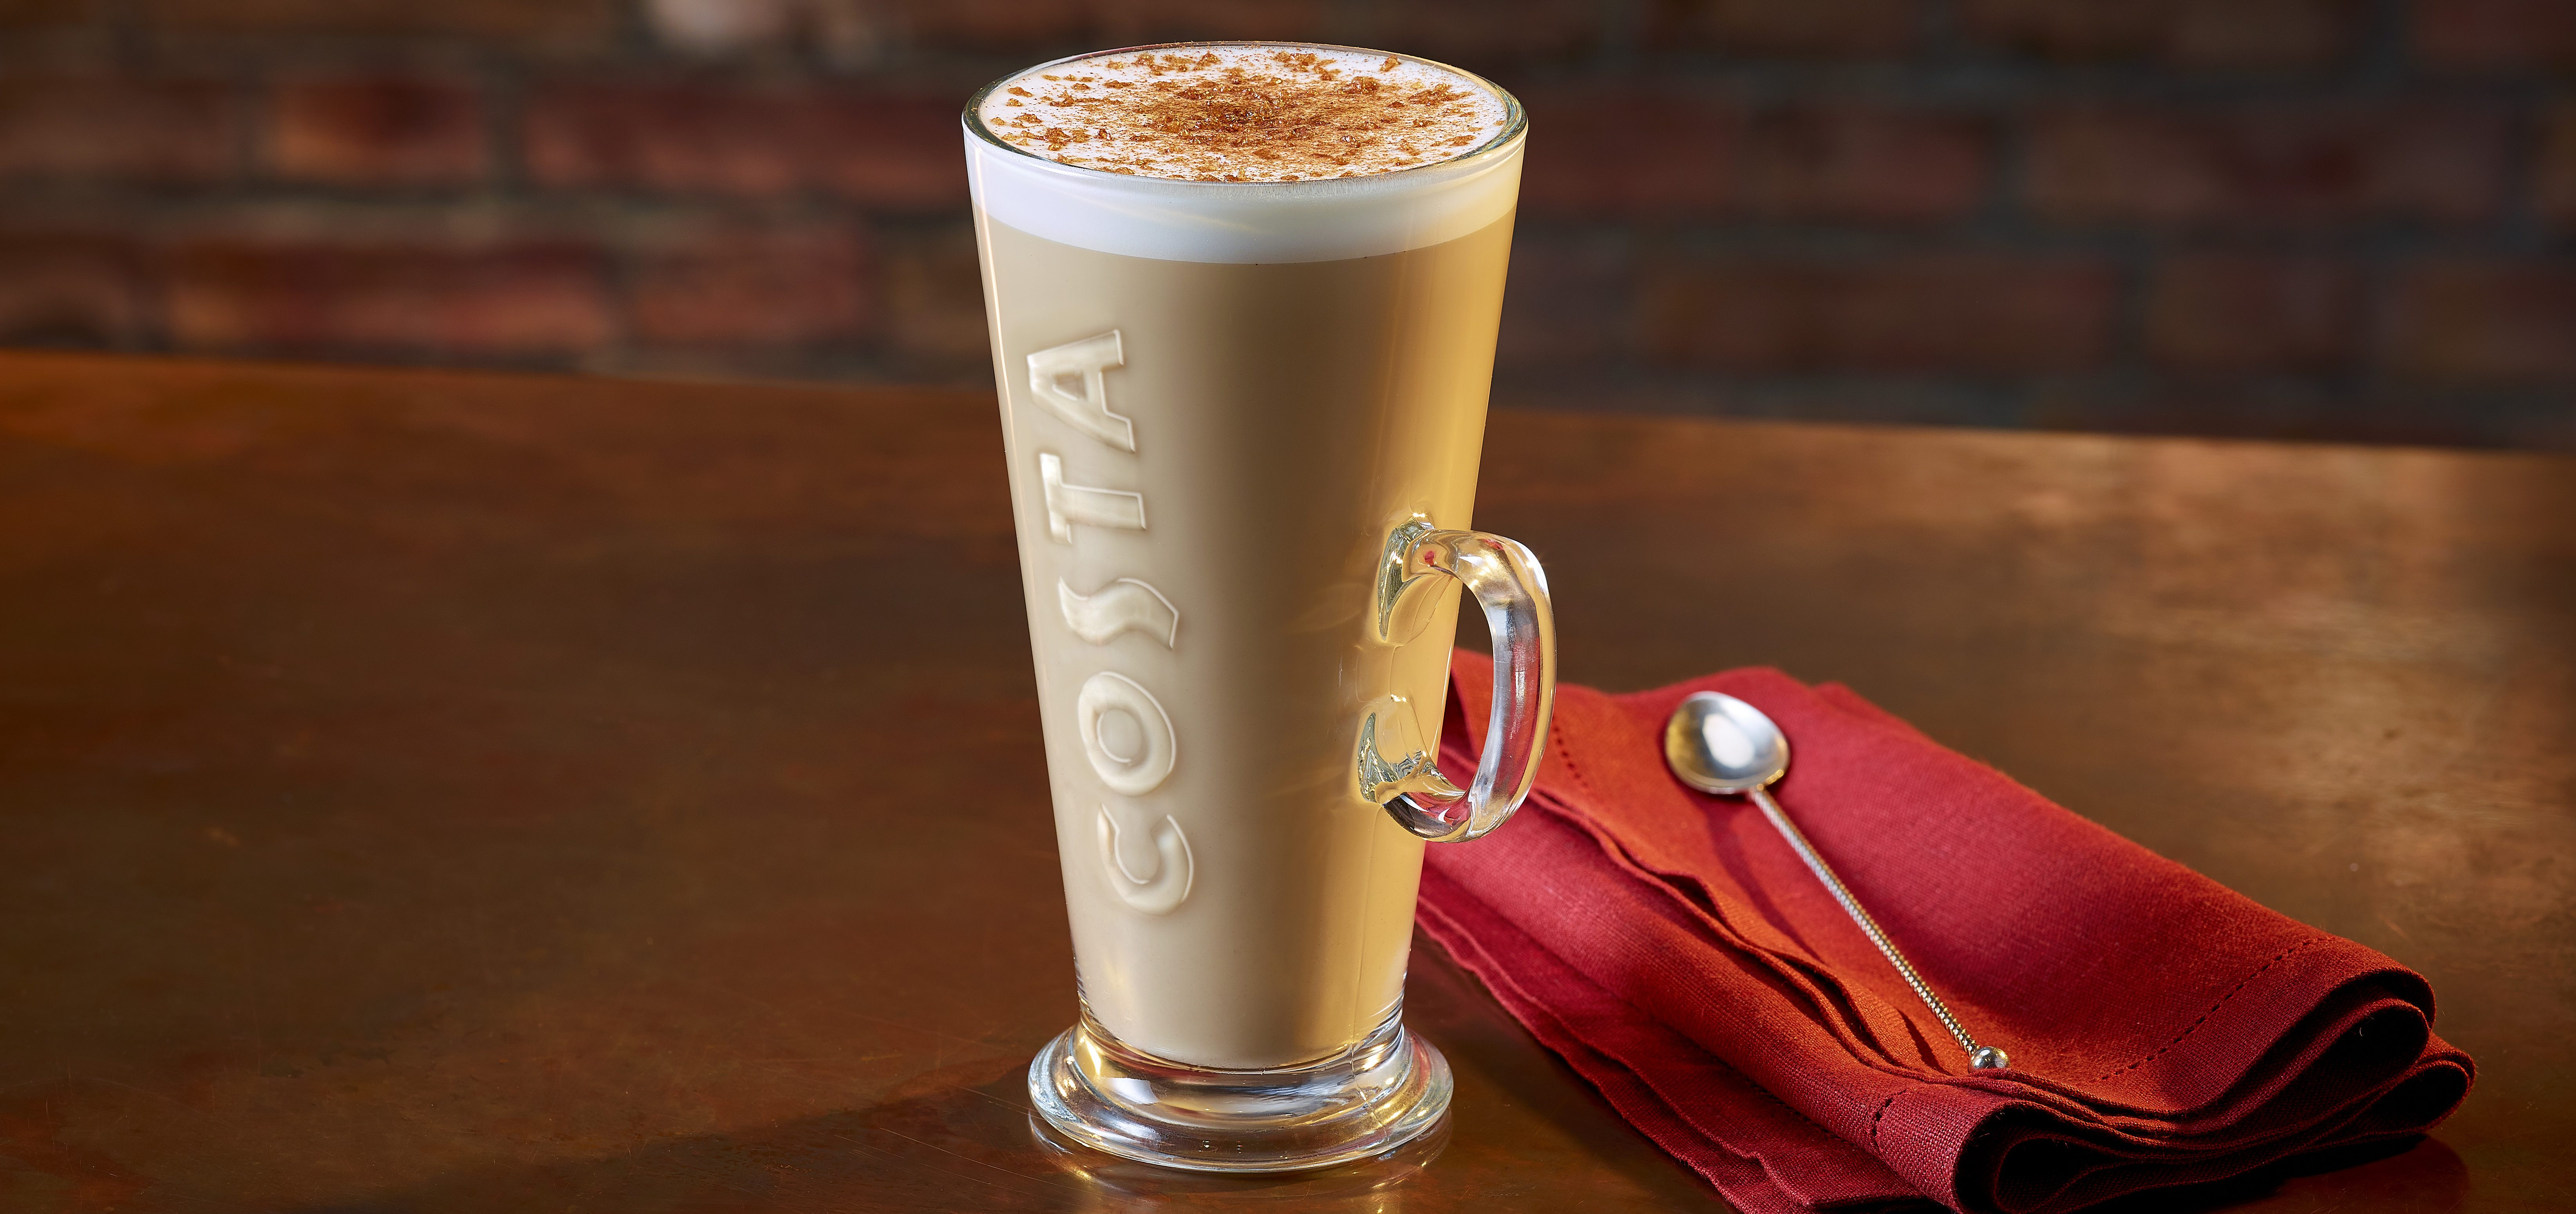 Christmas comes early as Costa reveals THREE of its festive coffees are in store now